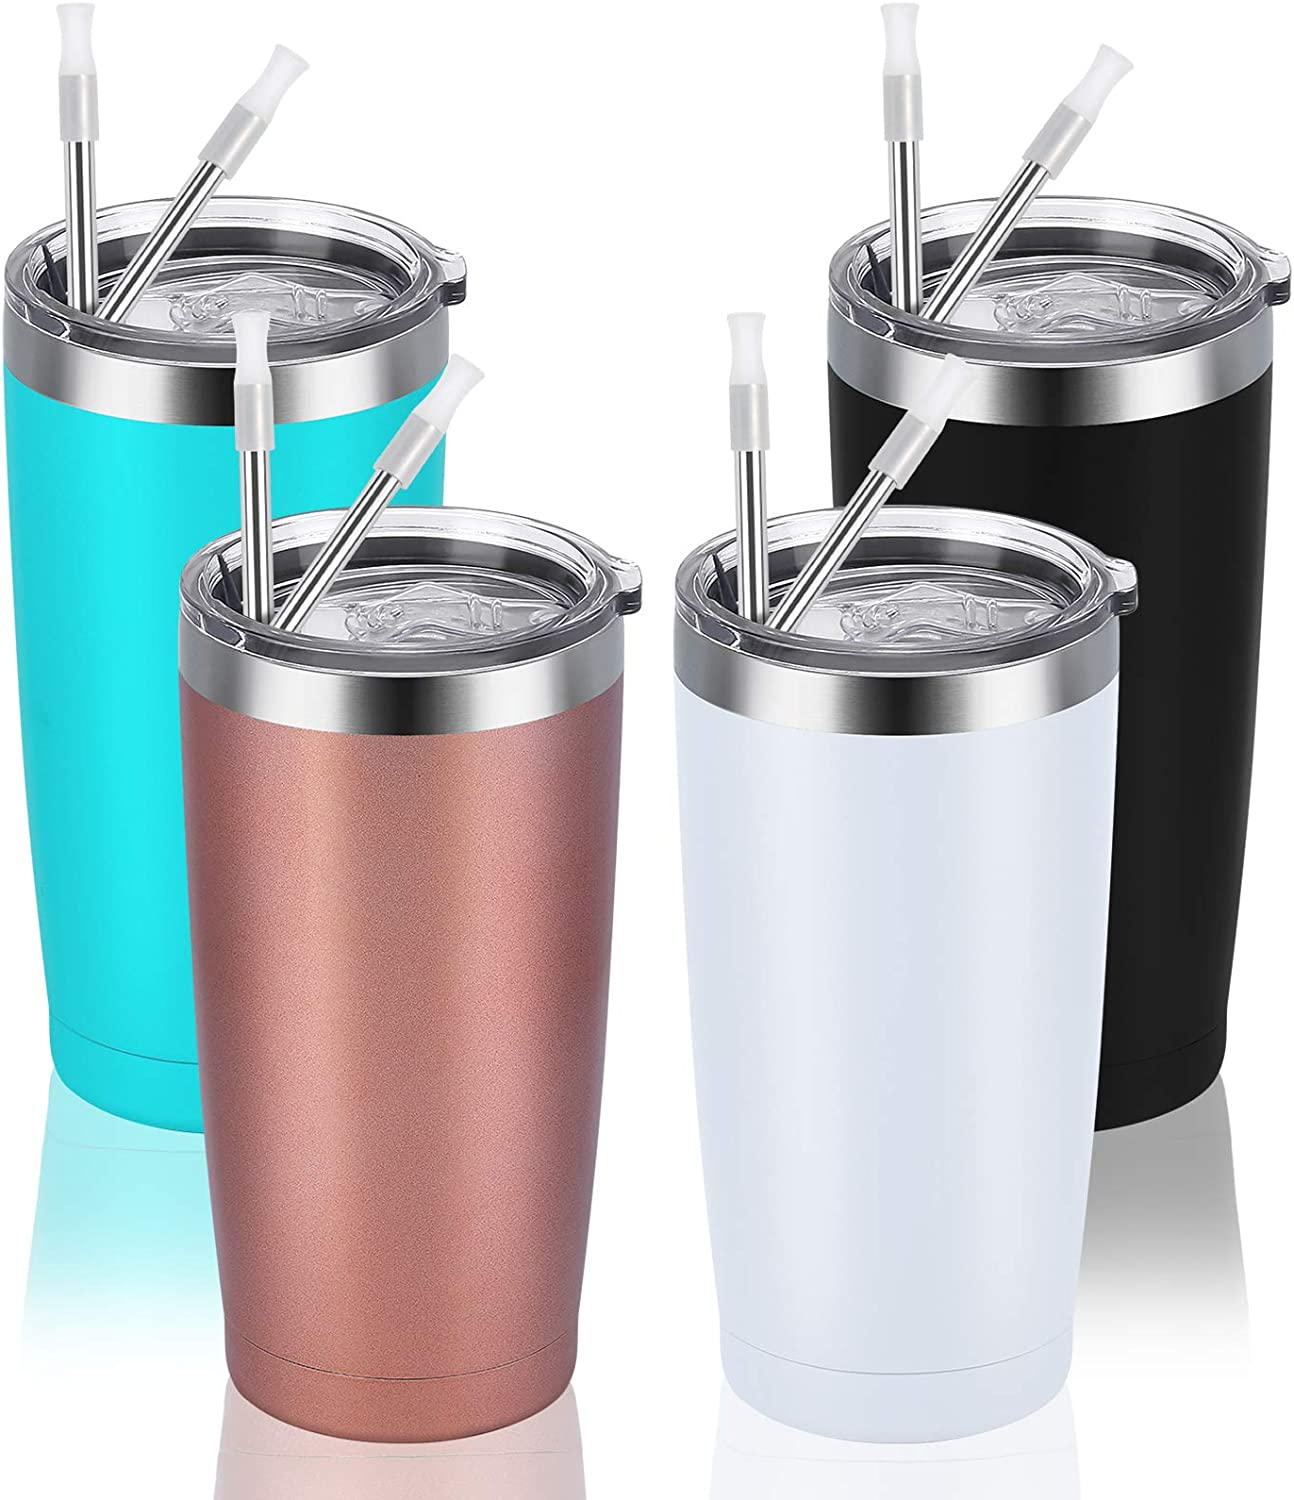 4 Pack Travel Tumblers with 8 Lids, Stainless Steel Double Wall Vacuum Travel Tumbler for Home School Office Camping, Insulated Tumbler Works Good for Ice Drink Hot Beverage(20oz, Assorted Colors)